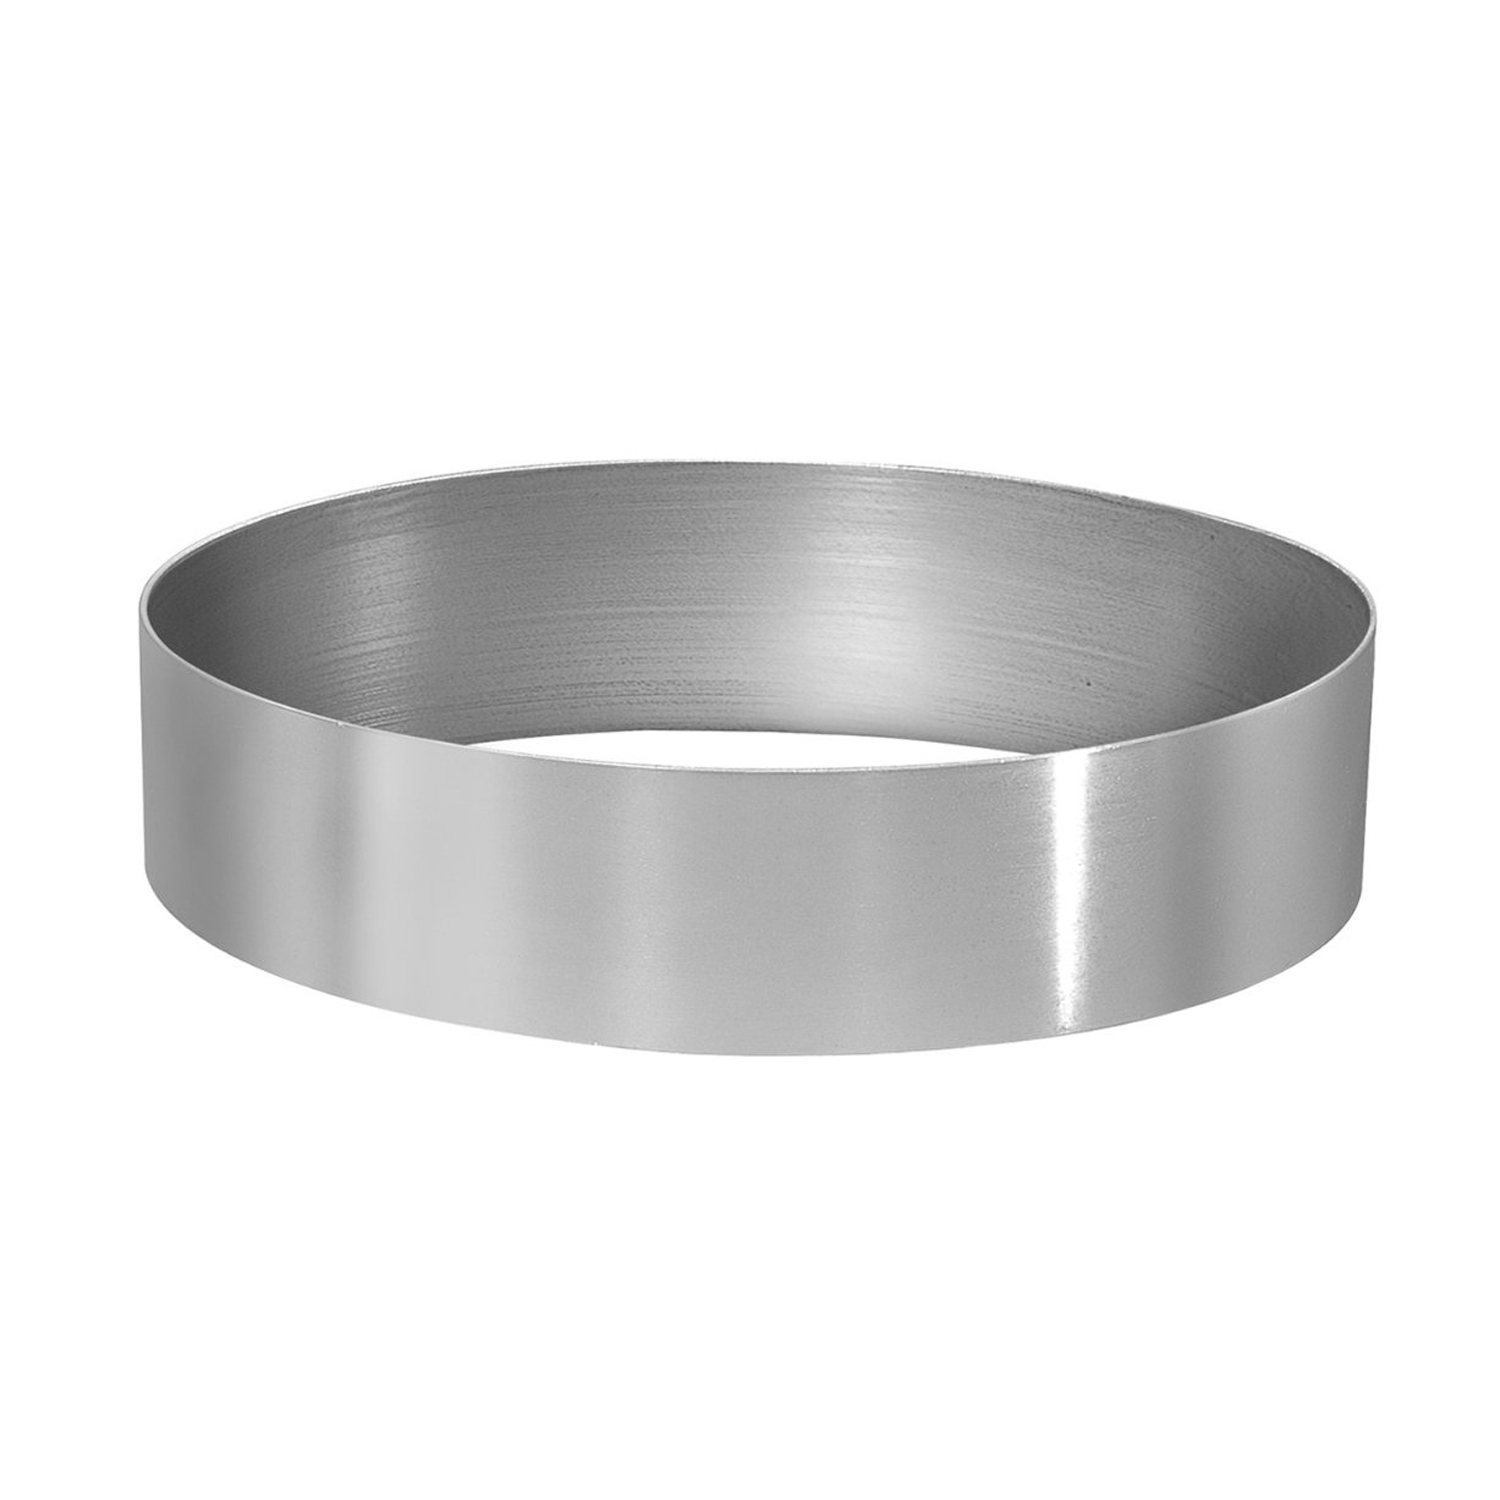 RING MOLDS